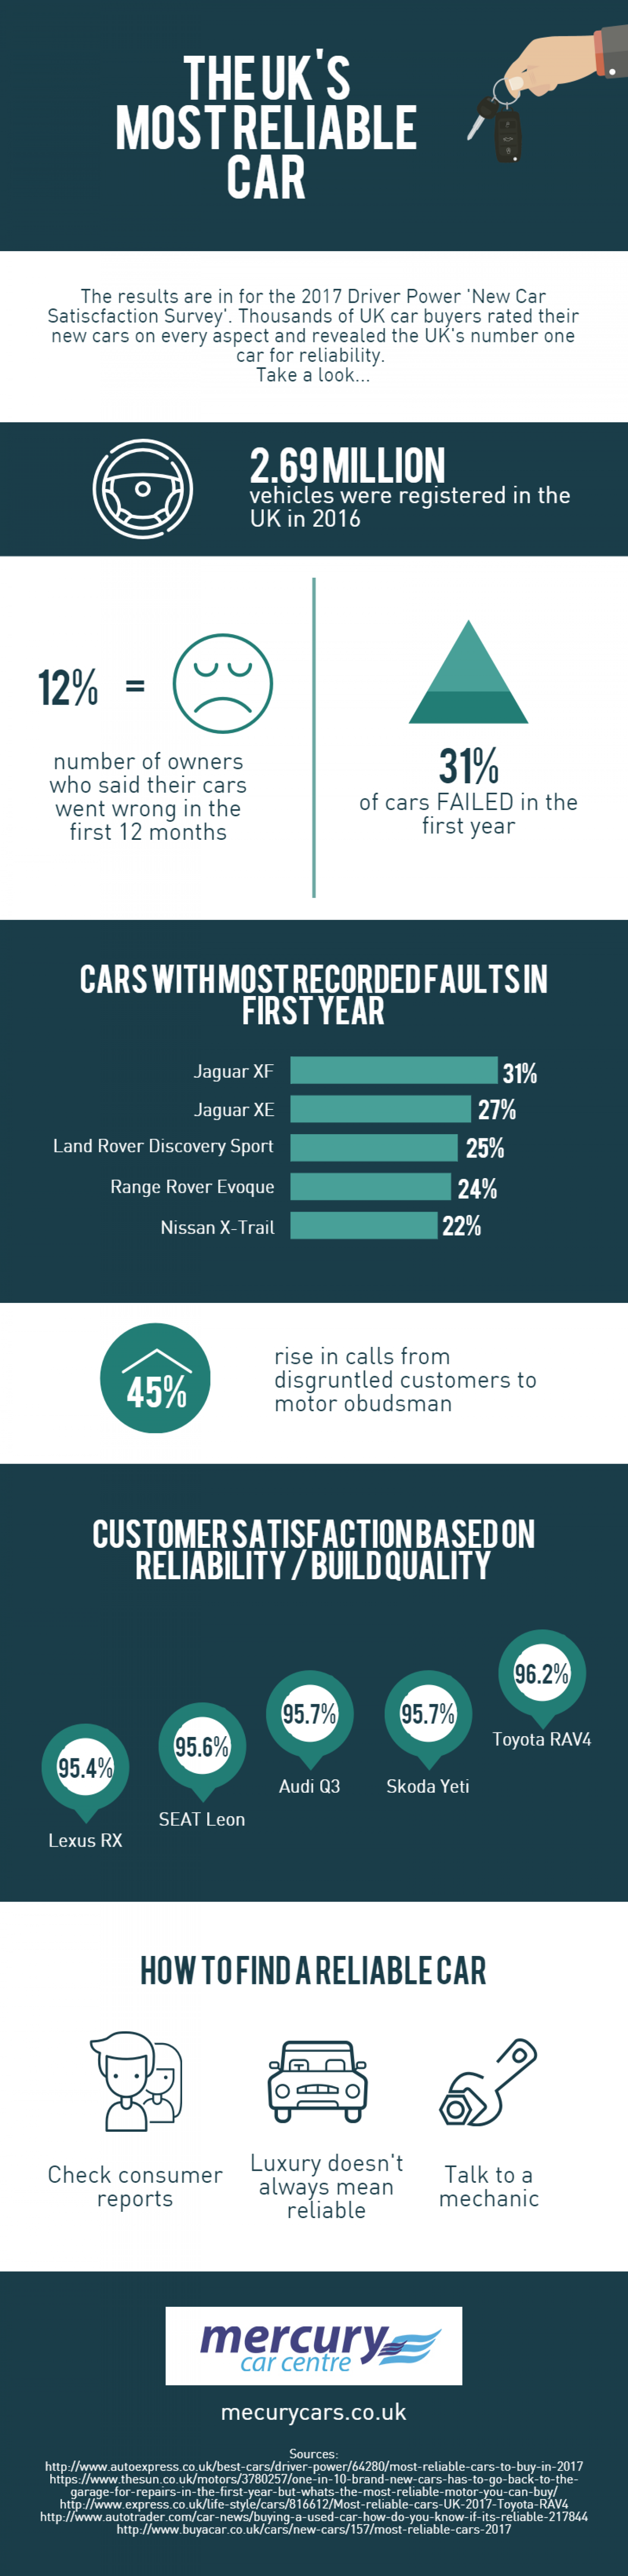 The UK's Most Reliable Car Infographic